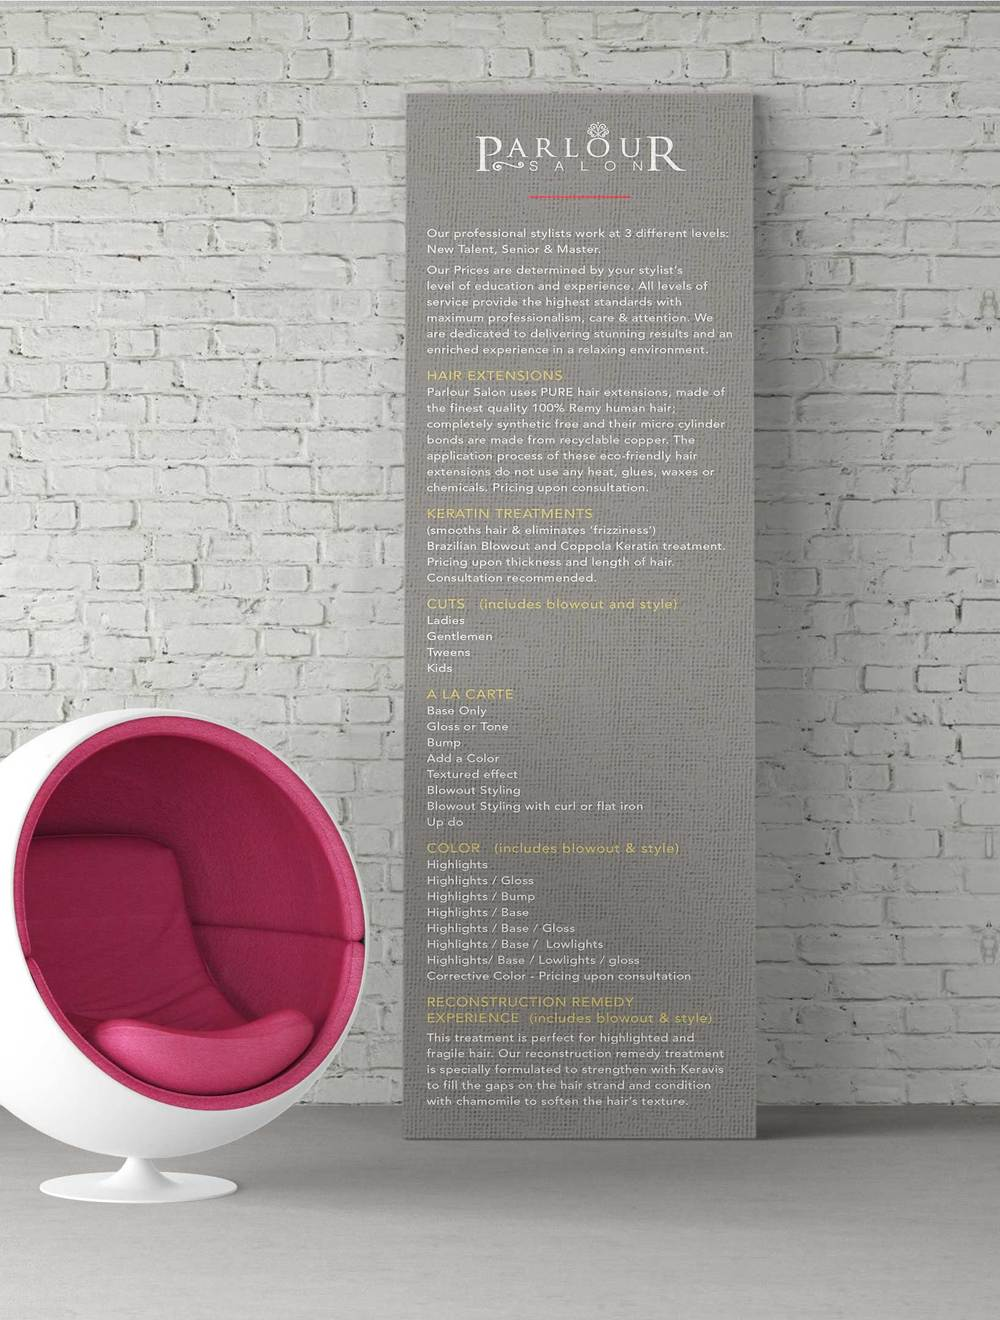 ParlourSalon.wall.menu.jpg